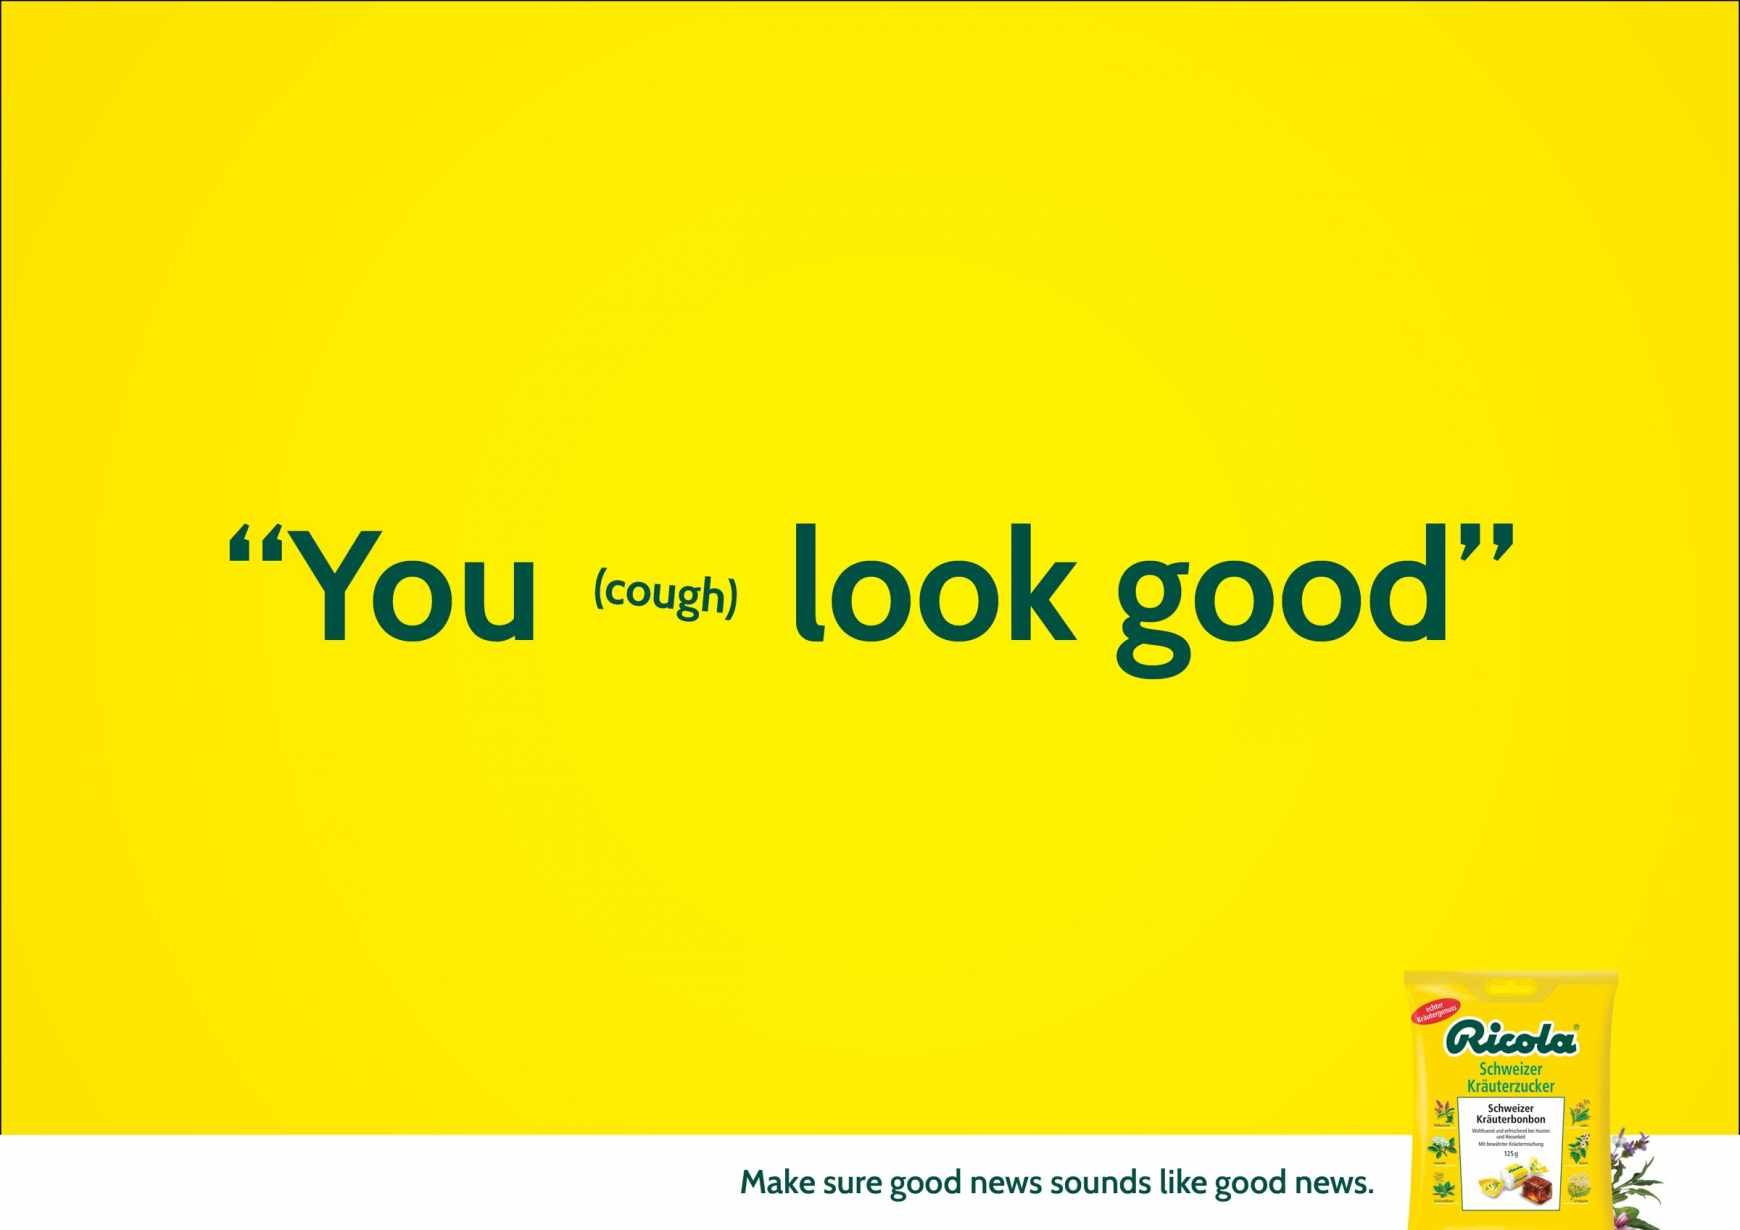 17 Best images about Good ads on Pinterest | Volkswagen ...